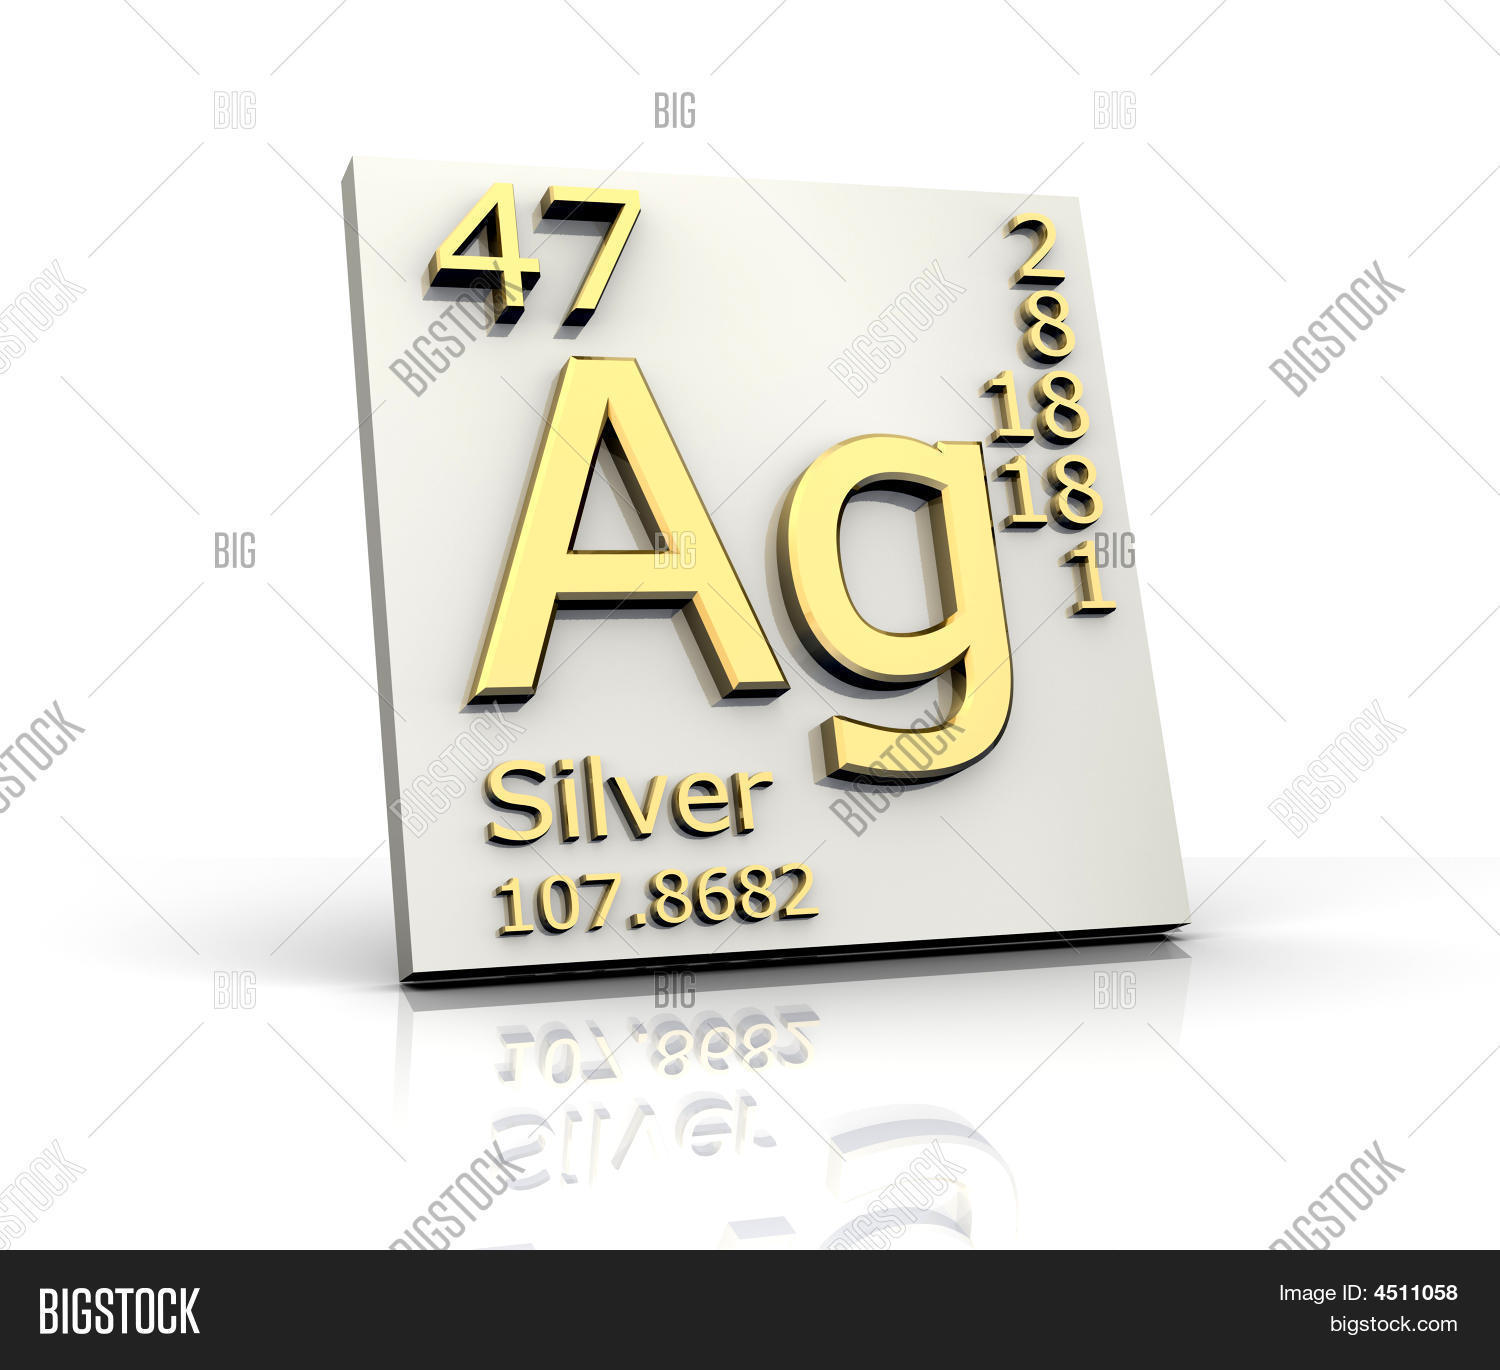 Silver form periodic table elements image photo bigstock silver form periodic table of elements gamestrikefo Image collections